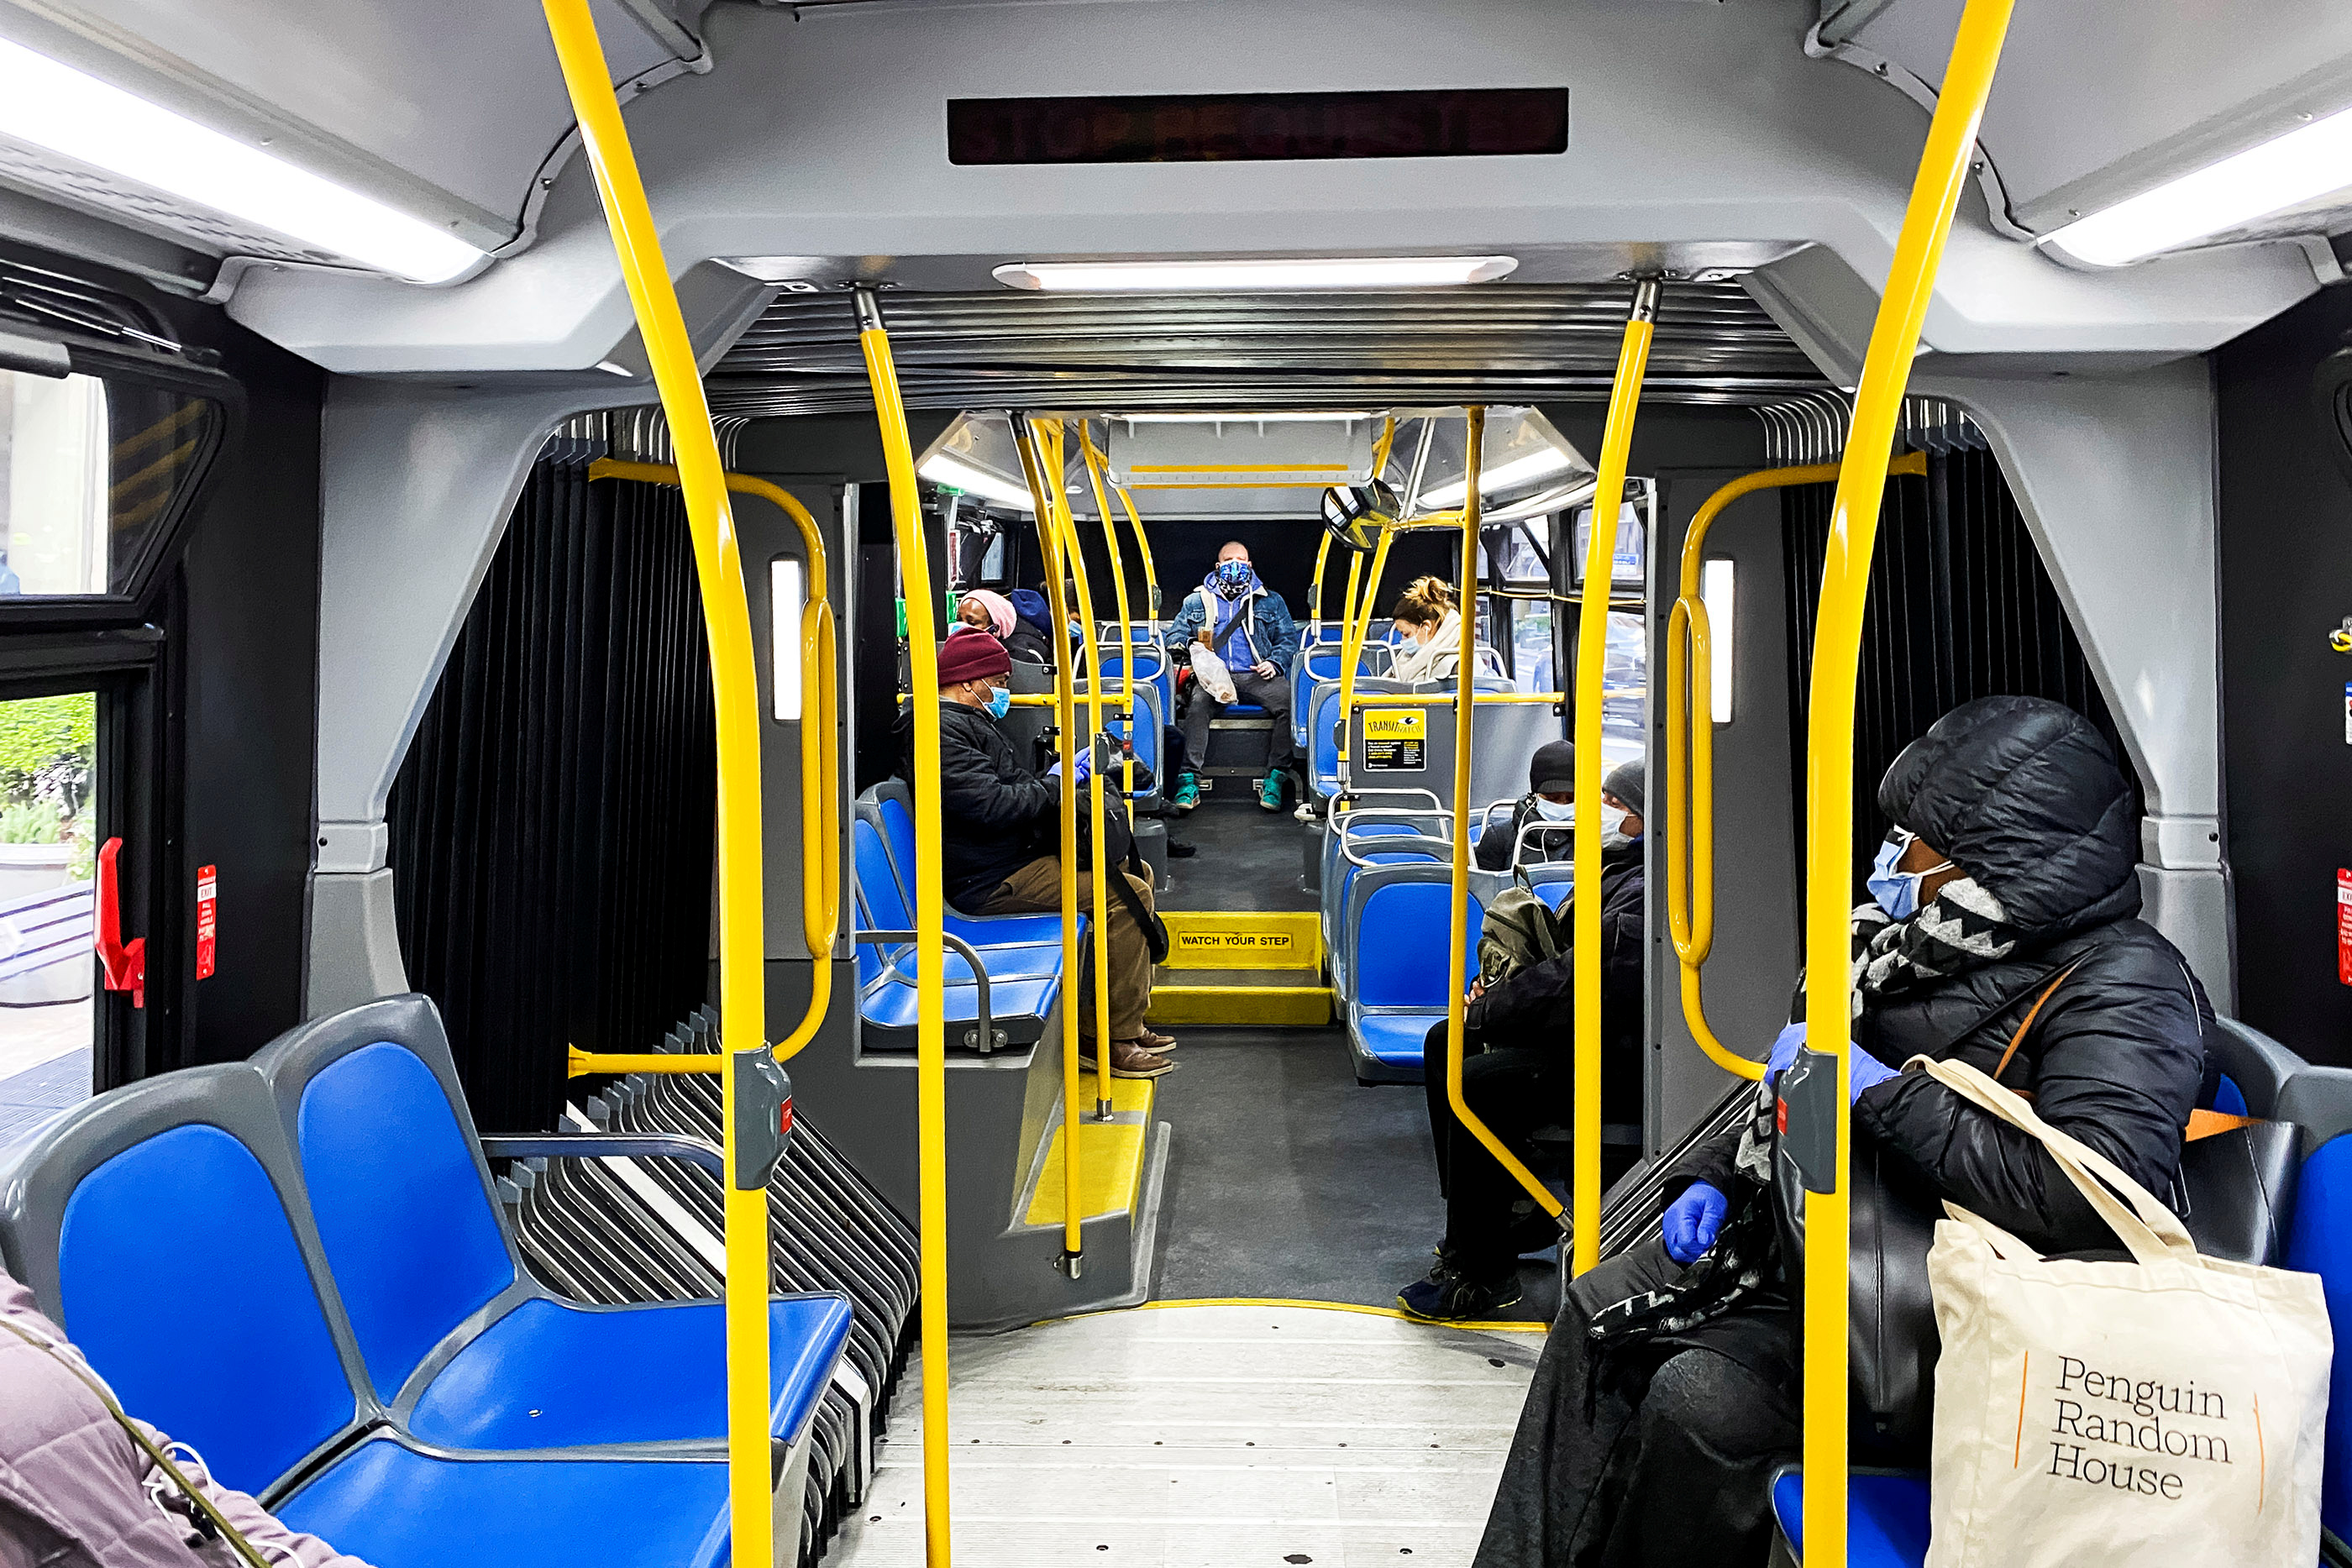 People try to keep social distance as they use the New York City The Metropolitan Transportation Authority (MTA) bus system during the outbreak of the coronavirus disease (COVID-19) in New York City, New York, U.S., April 22, 2020. REUTERS/Eduardo Munoz